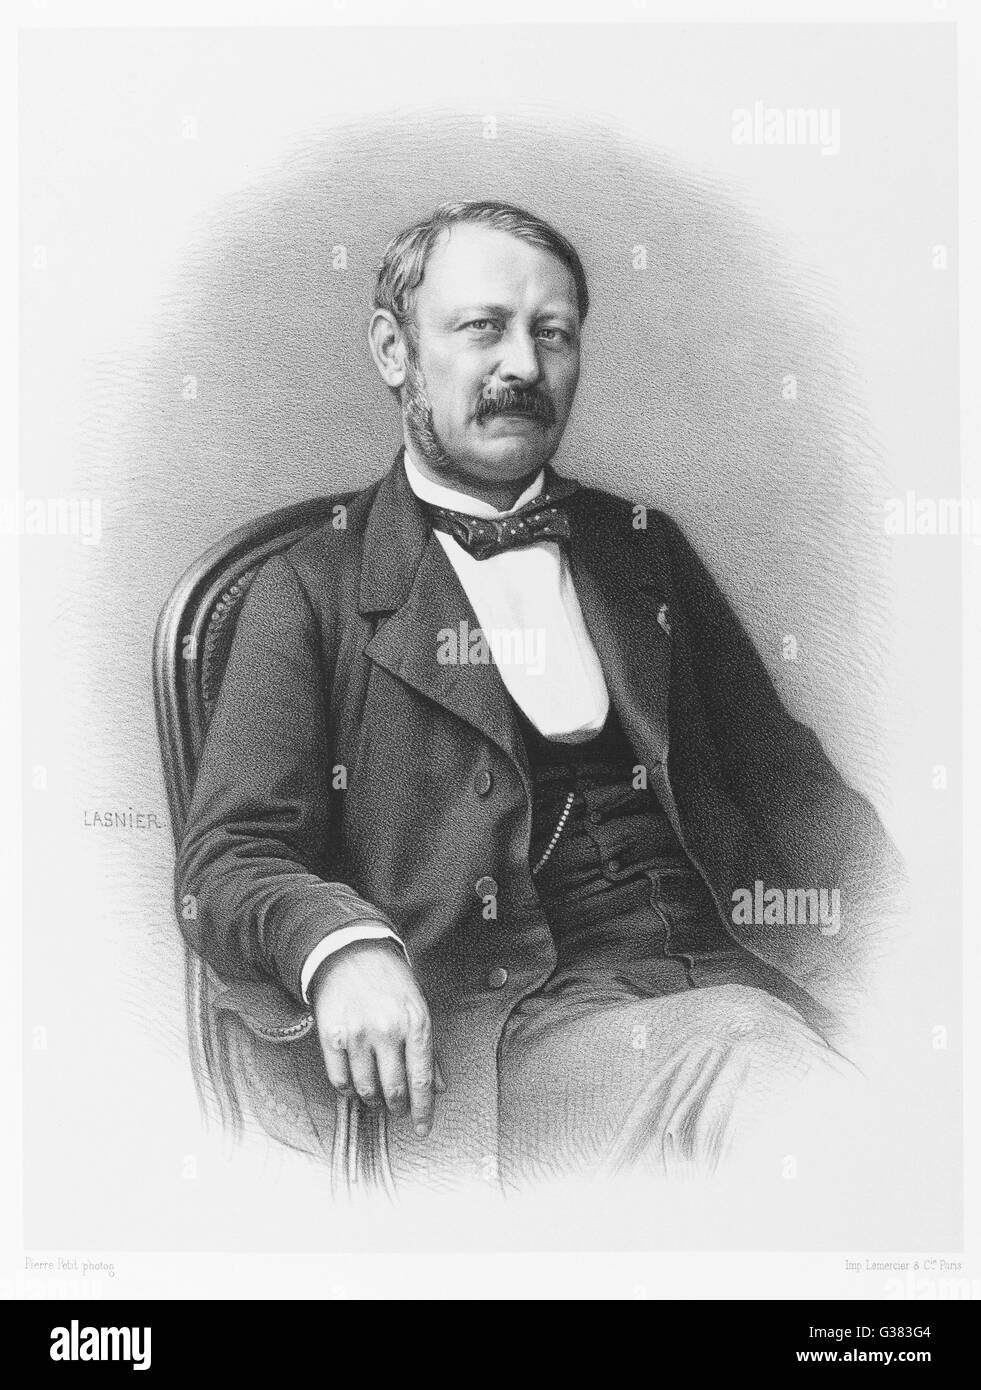 LOUIS FERDINAND ALFRED MAURY  French antiquarian, scholar,  noted for books on dreams and  folklore      Date: 1817 - Stock Image